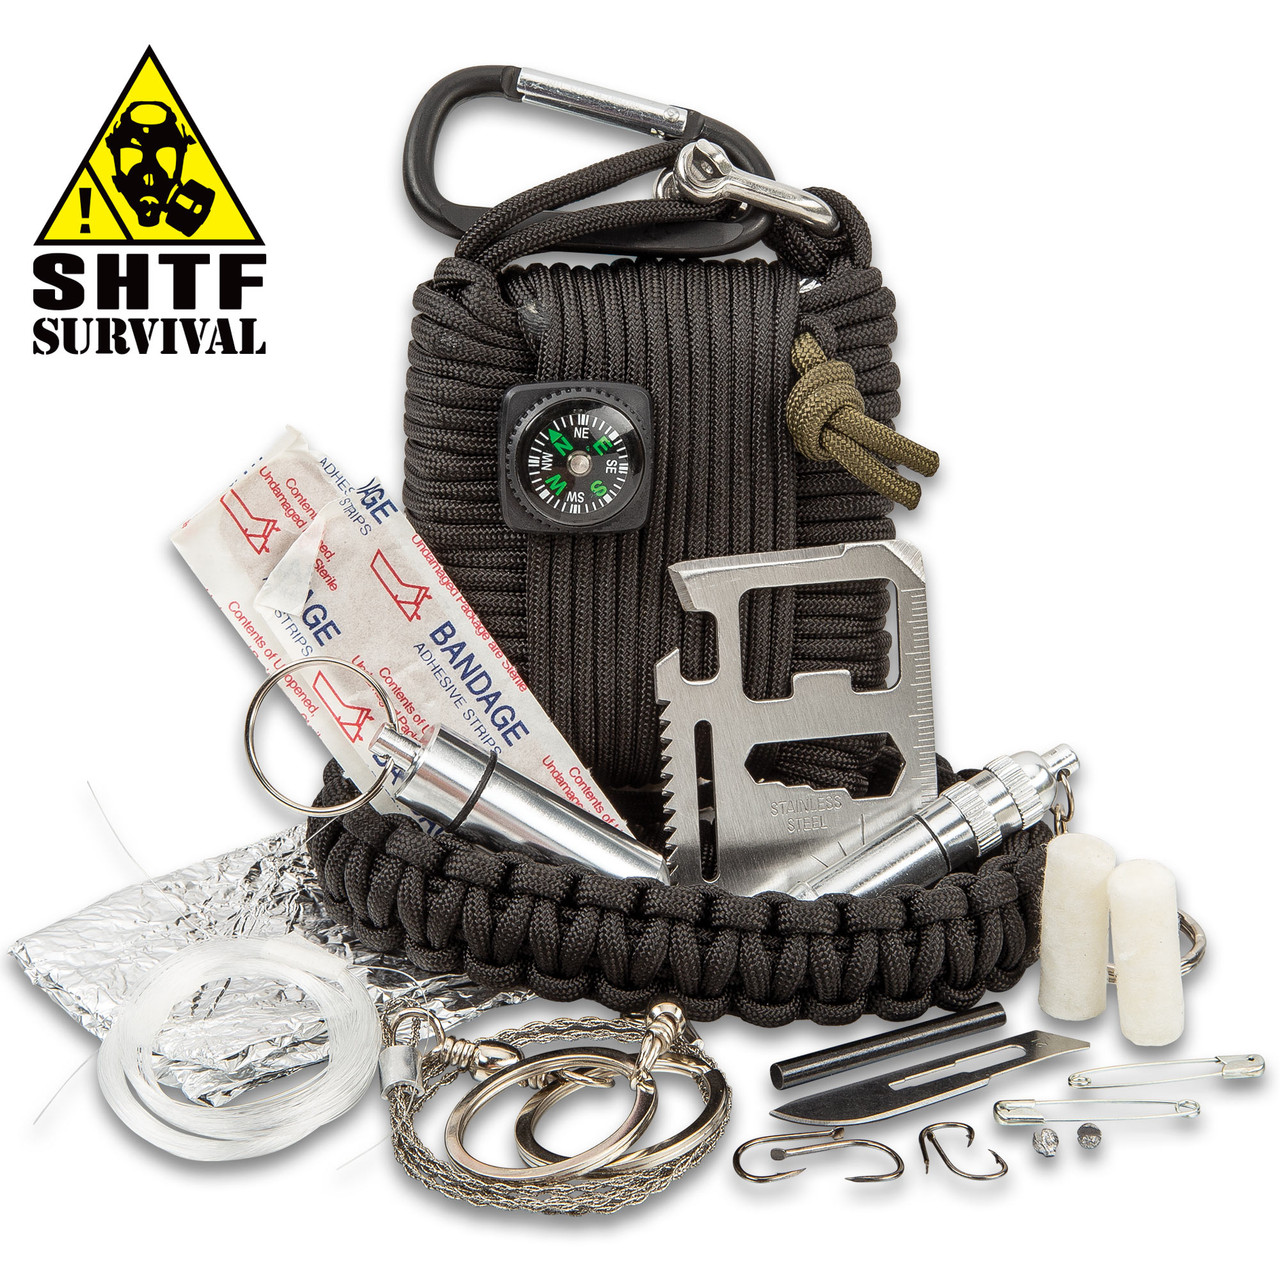 SHTF Paracord Survival Kit With Carabiner - 20 Pieces